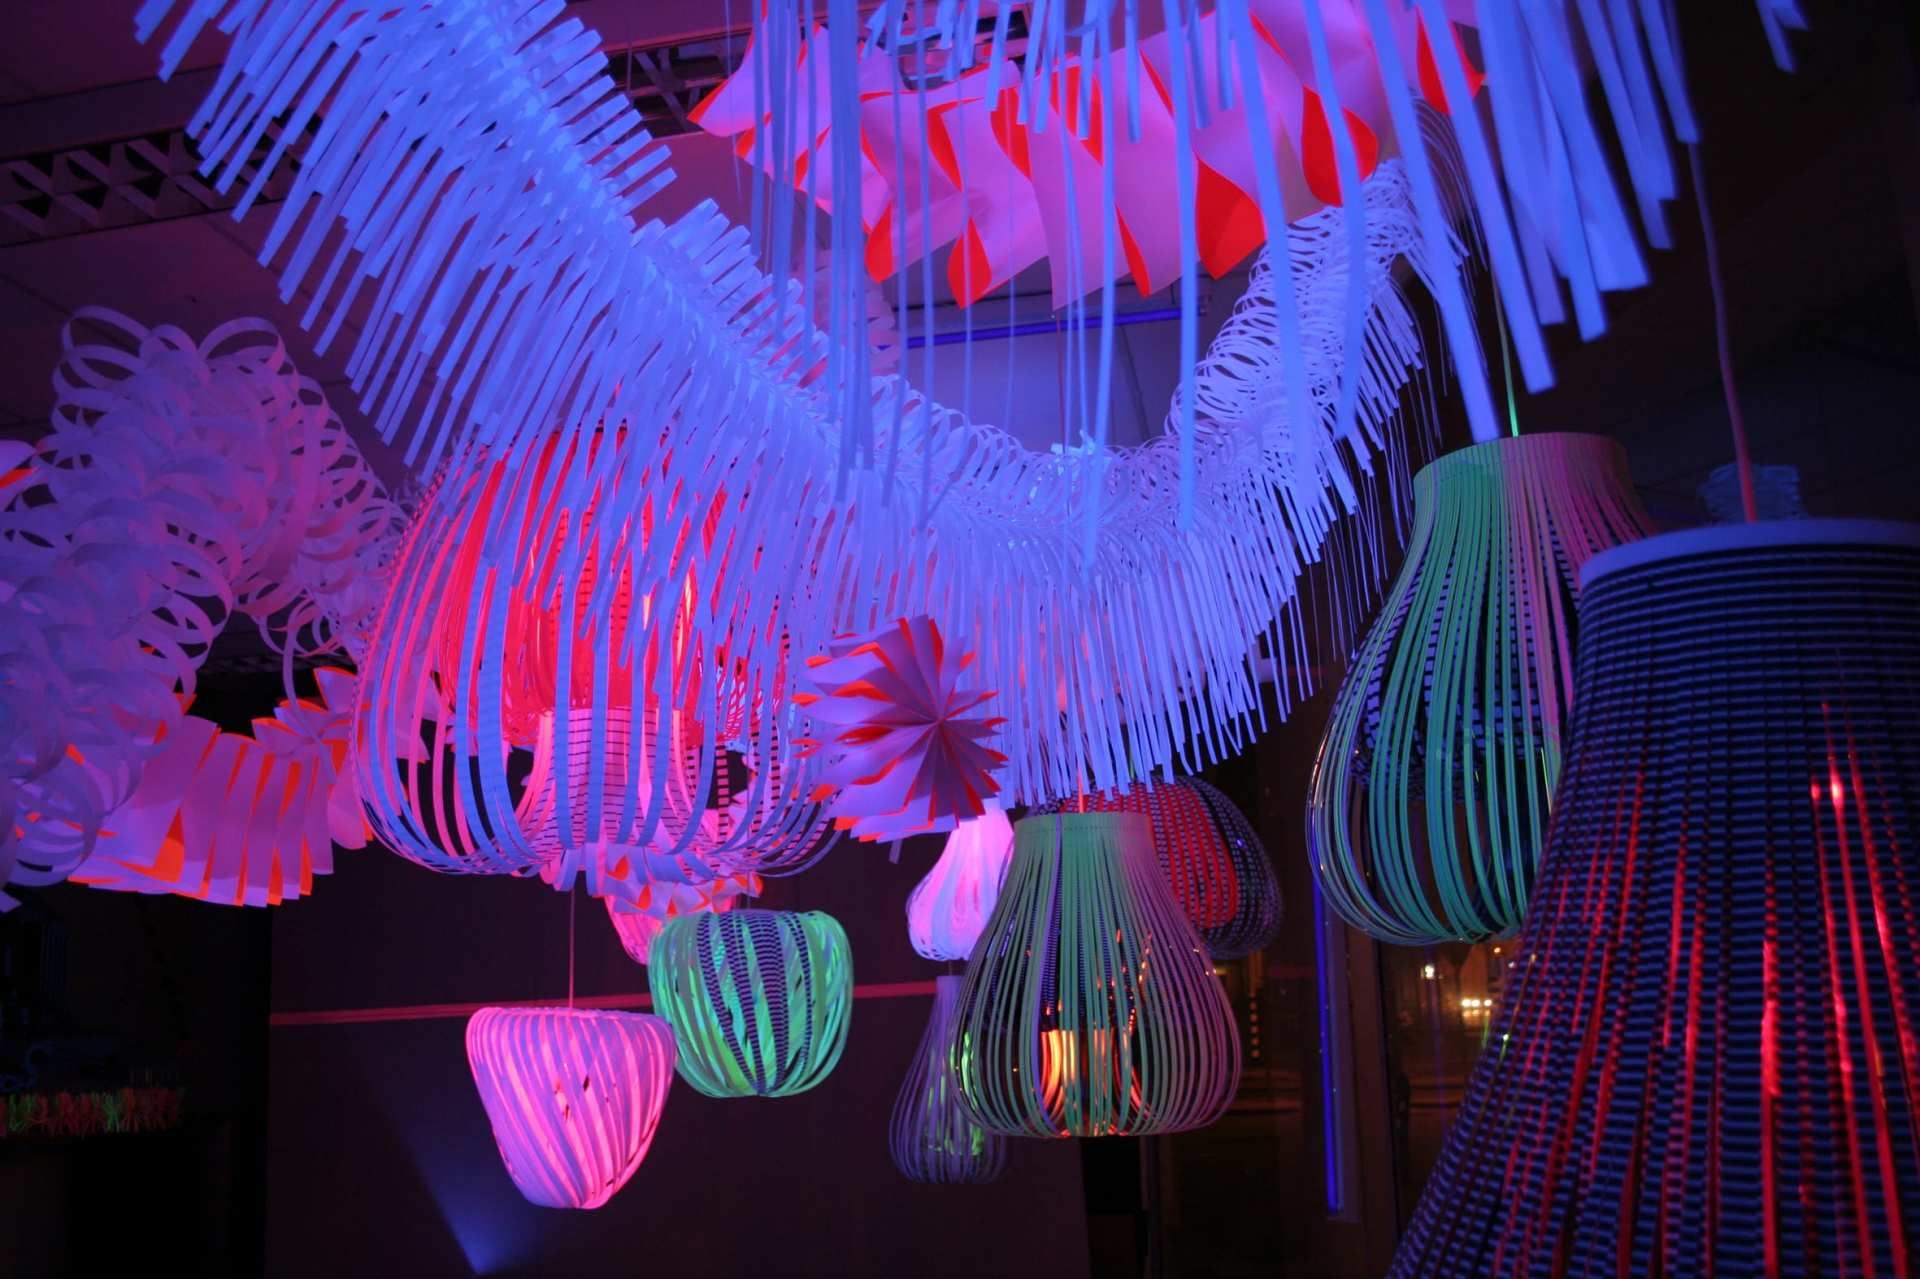 paper_project_light_installation_design_paula_arntzen